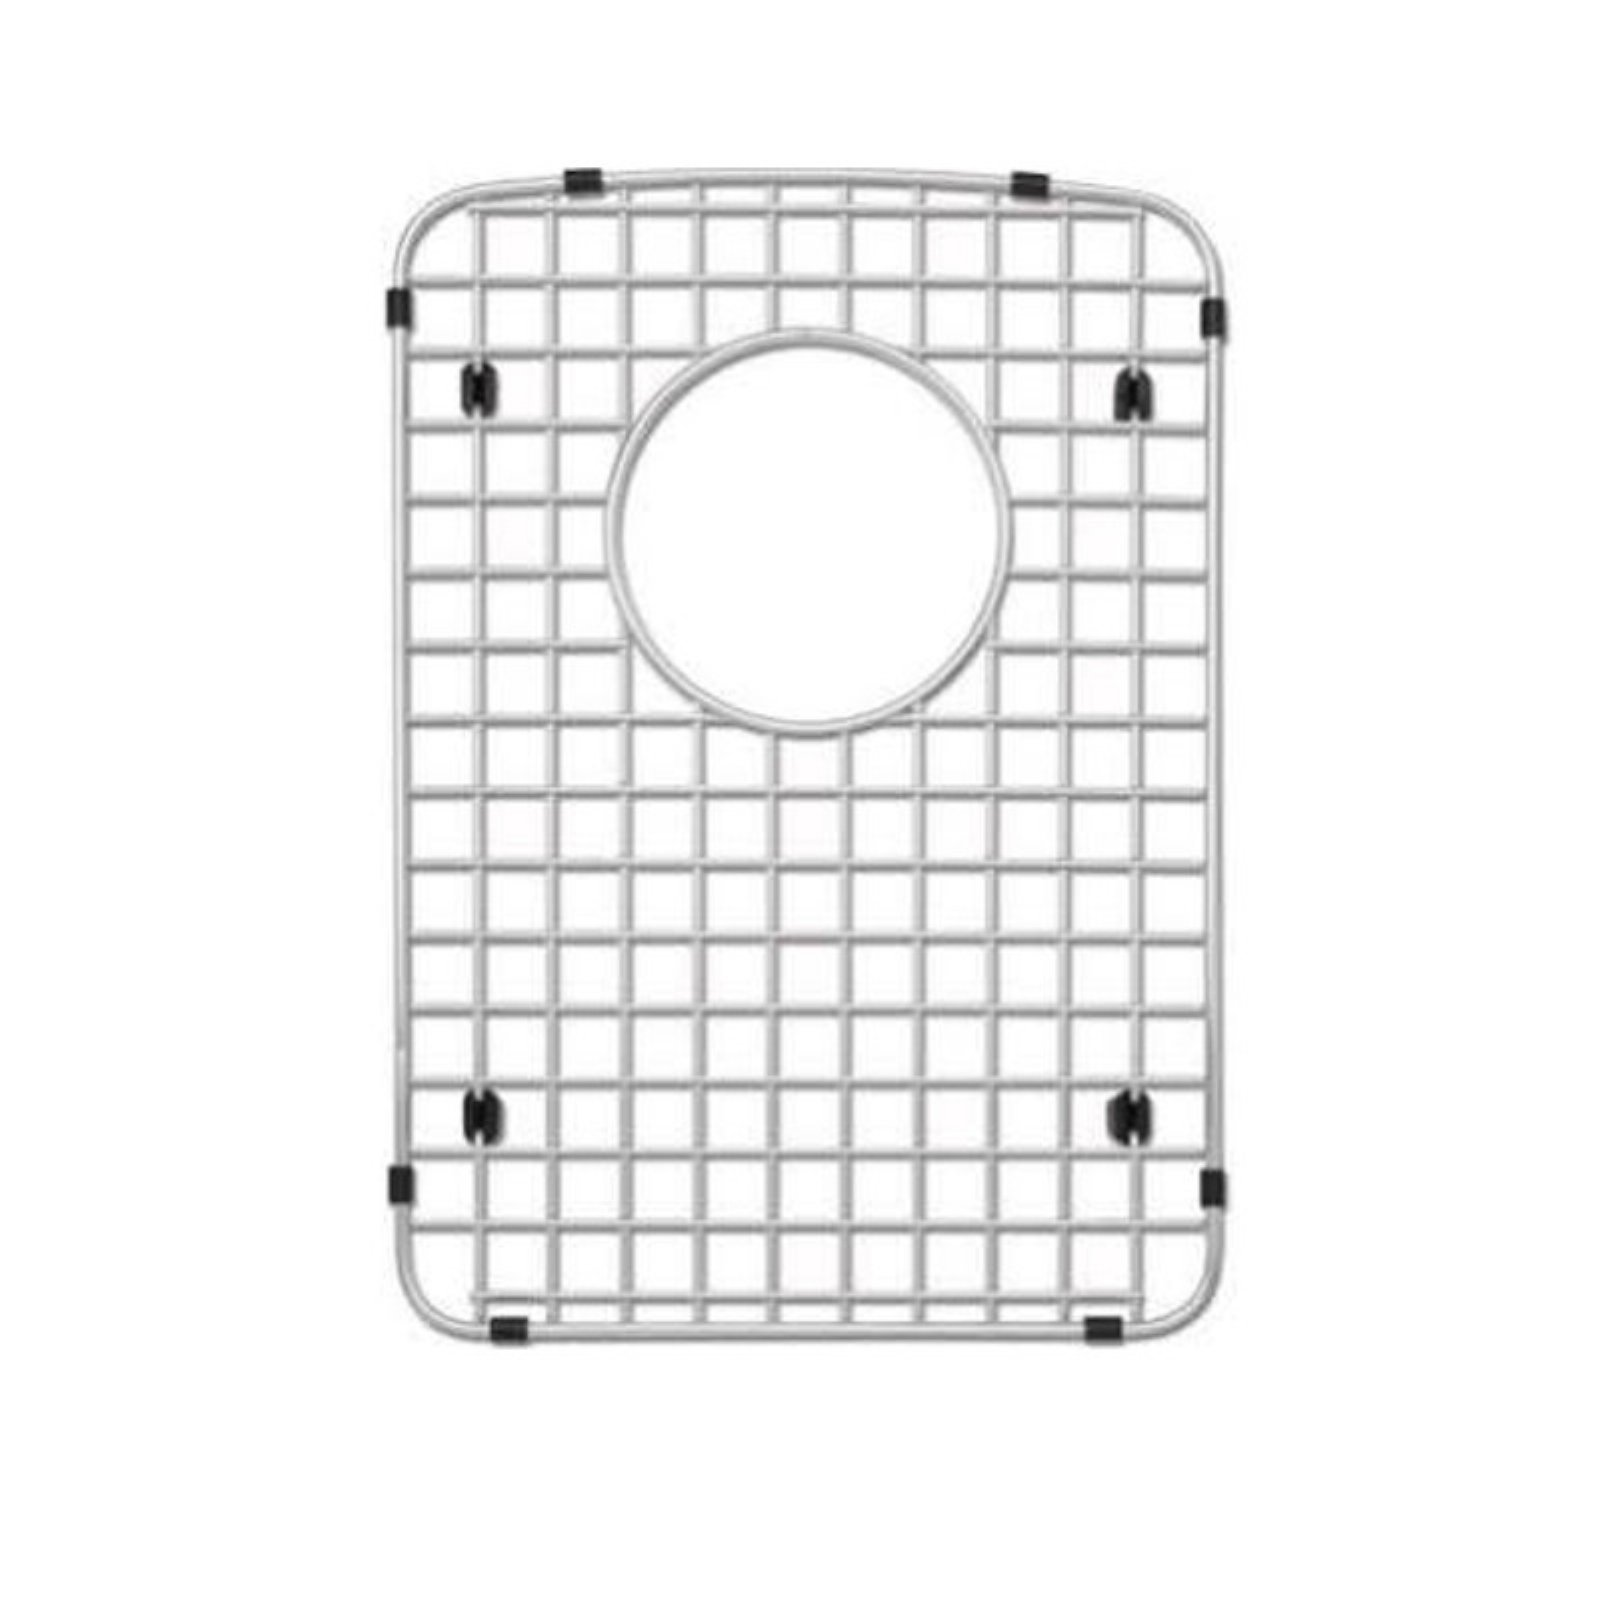 "Blanco 231342 15.375"" x 10.875"" Sink Grid, Stainless Steel"